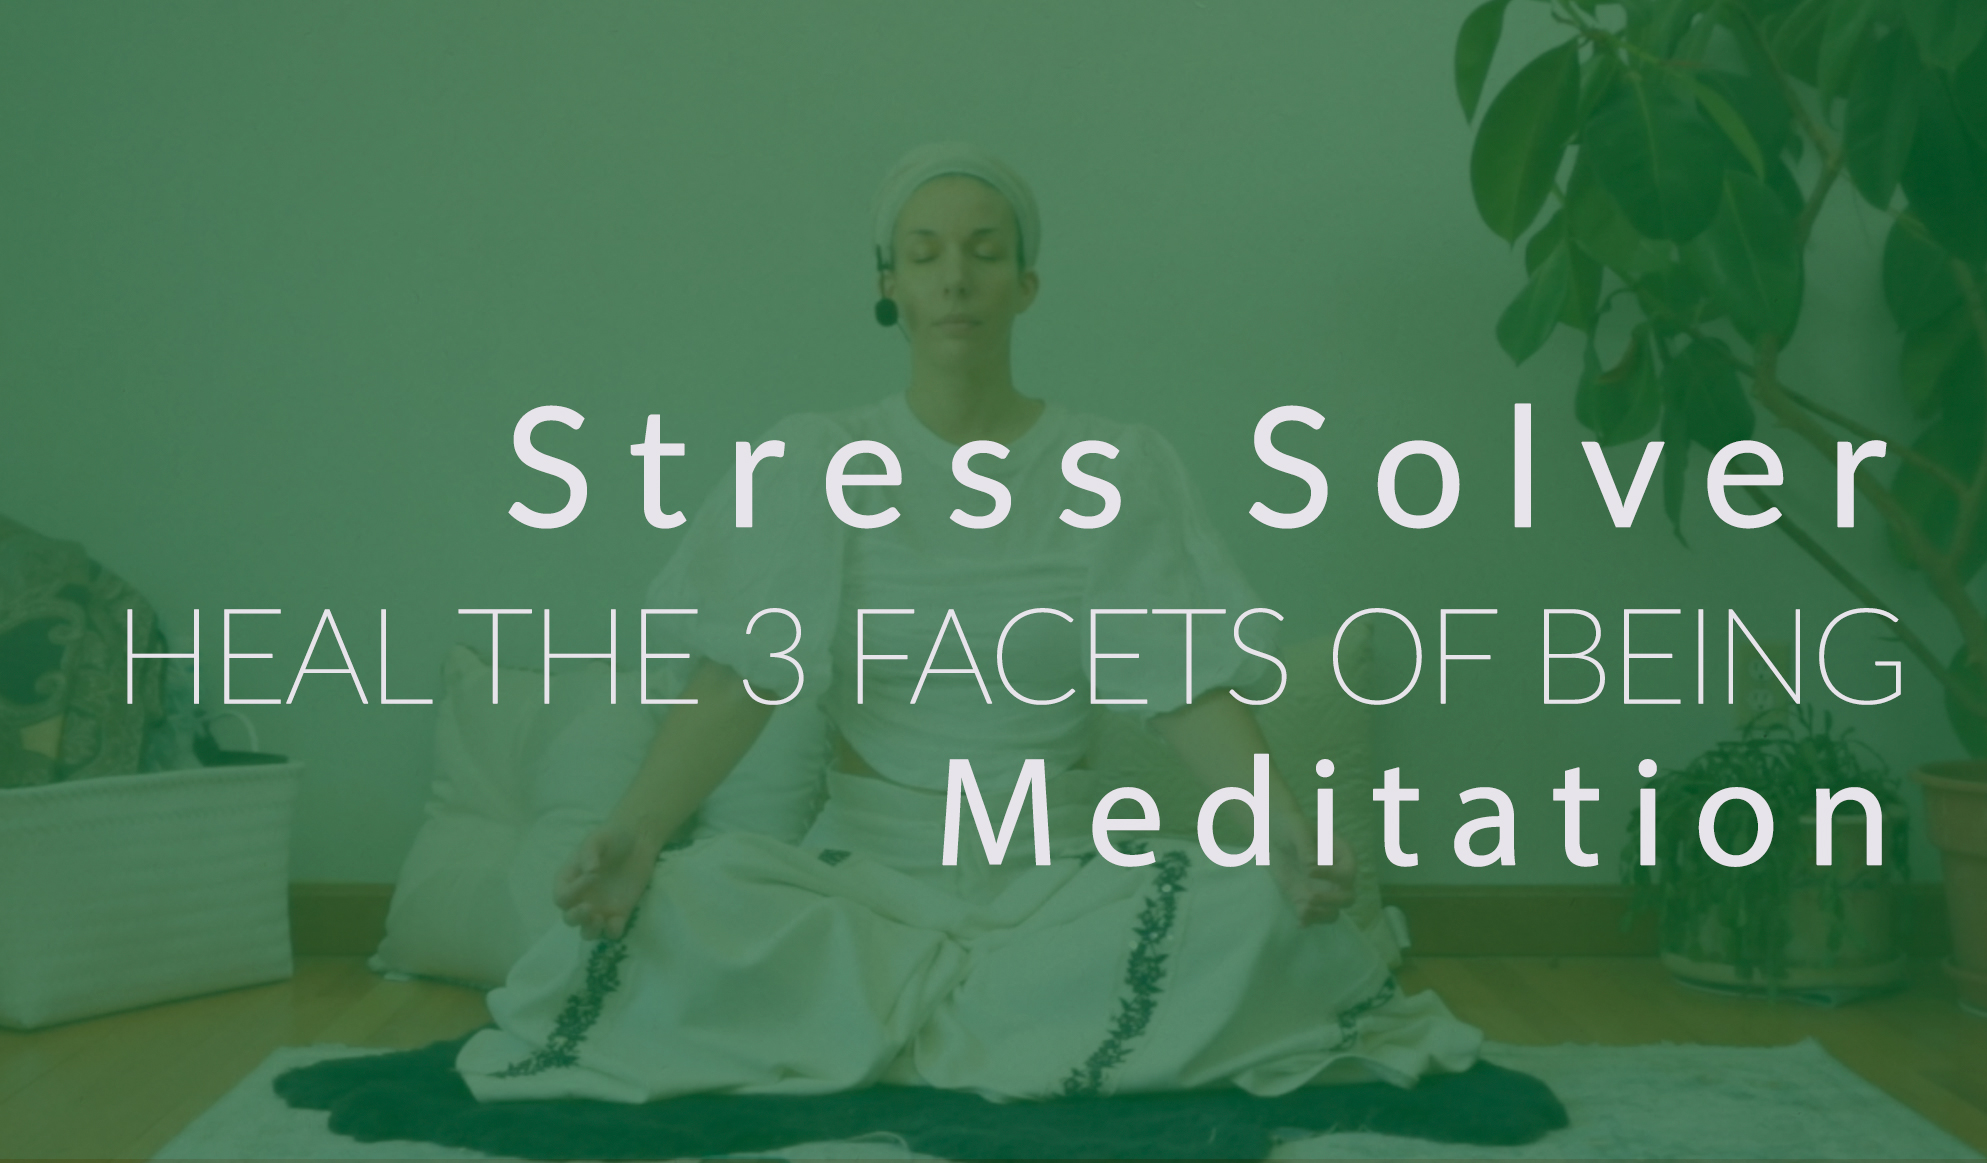 Meditation to Heal the 3 Facets of Being